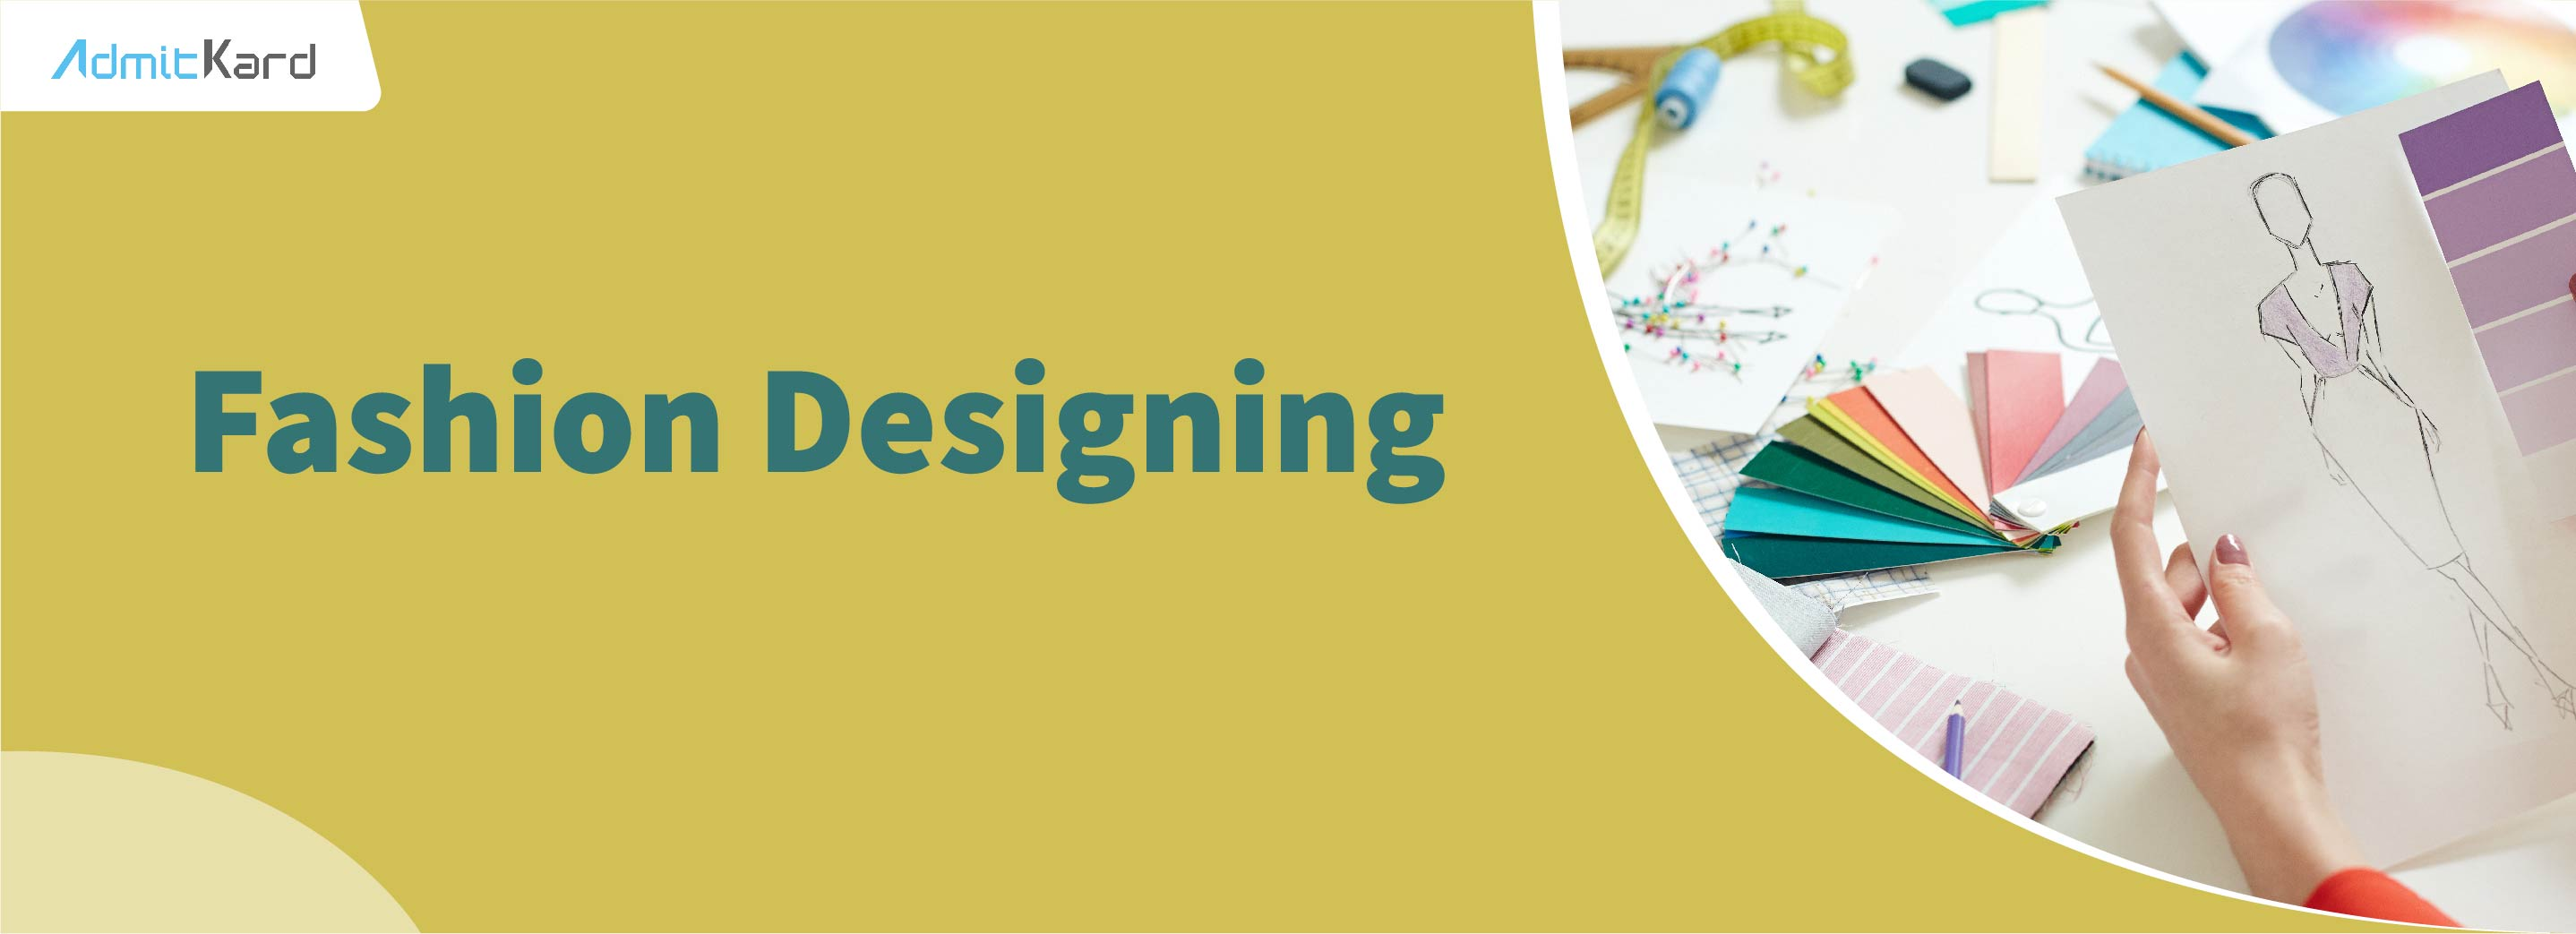 Fashion Designing The Complete Guide Admitkard Blog